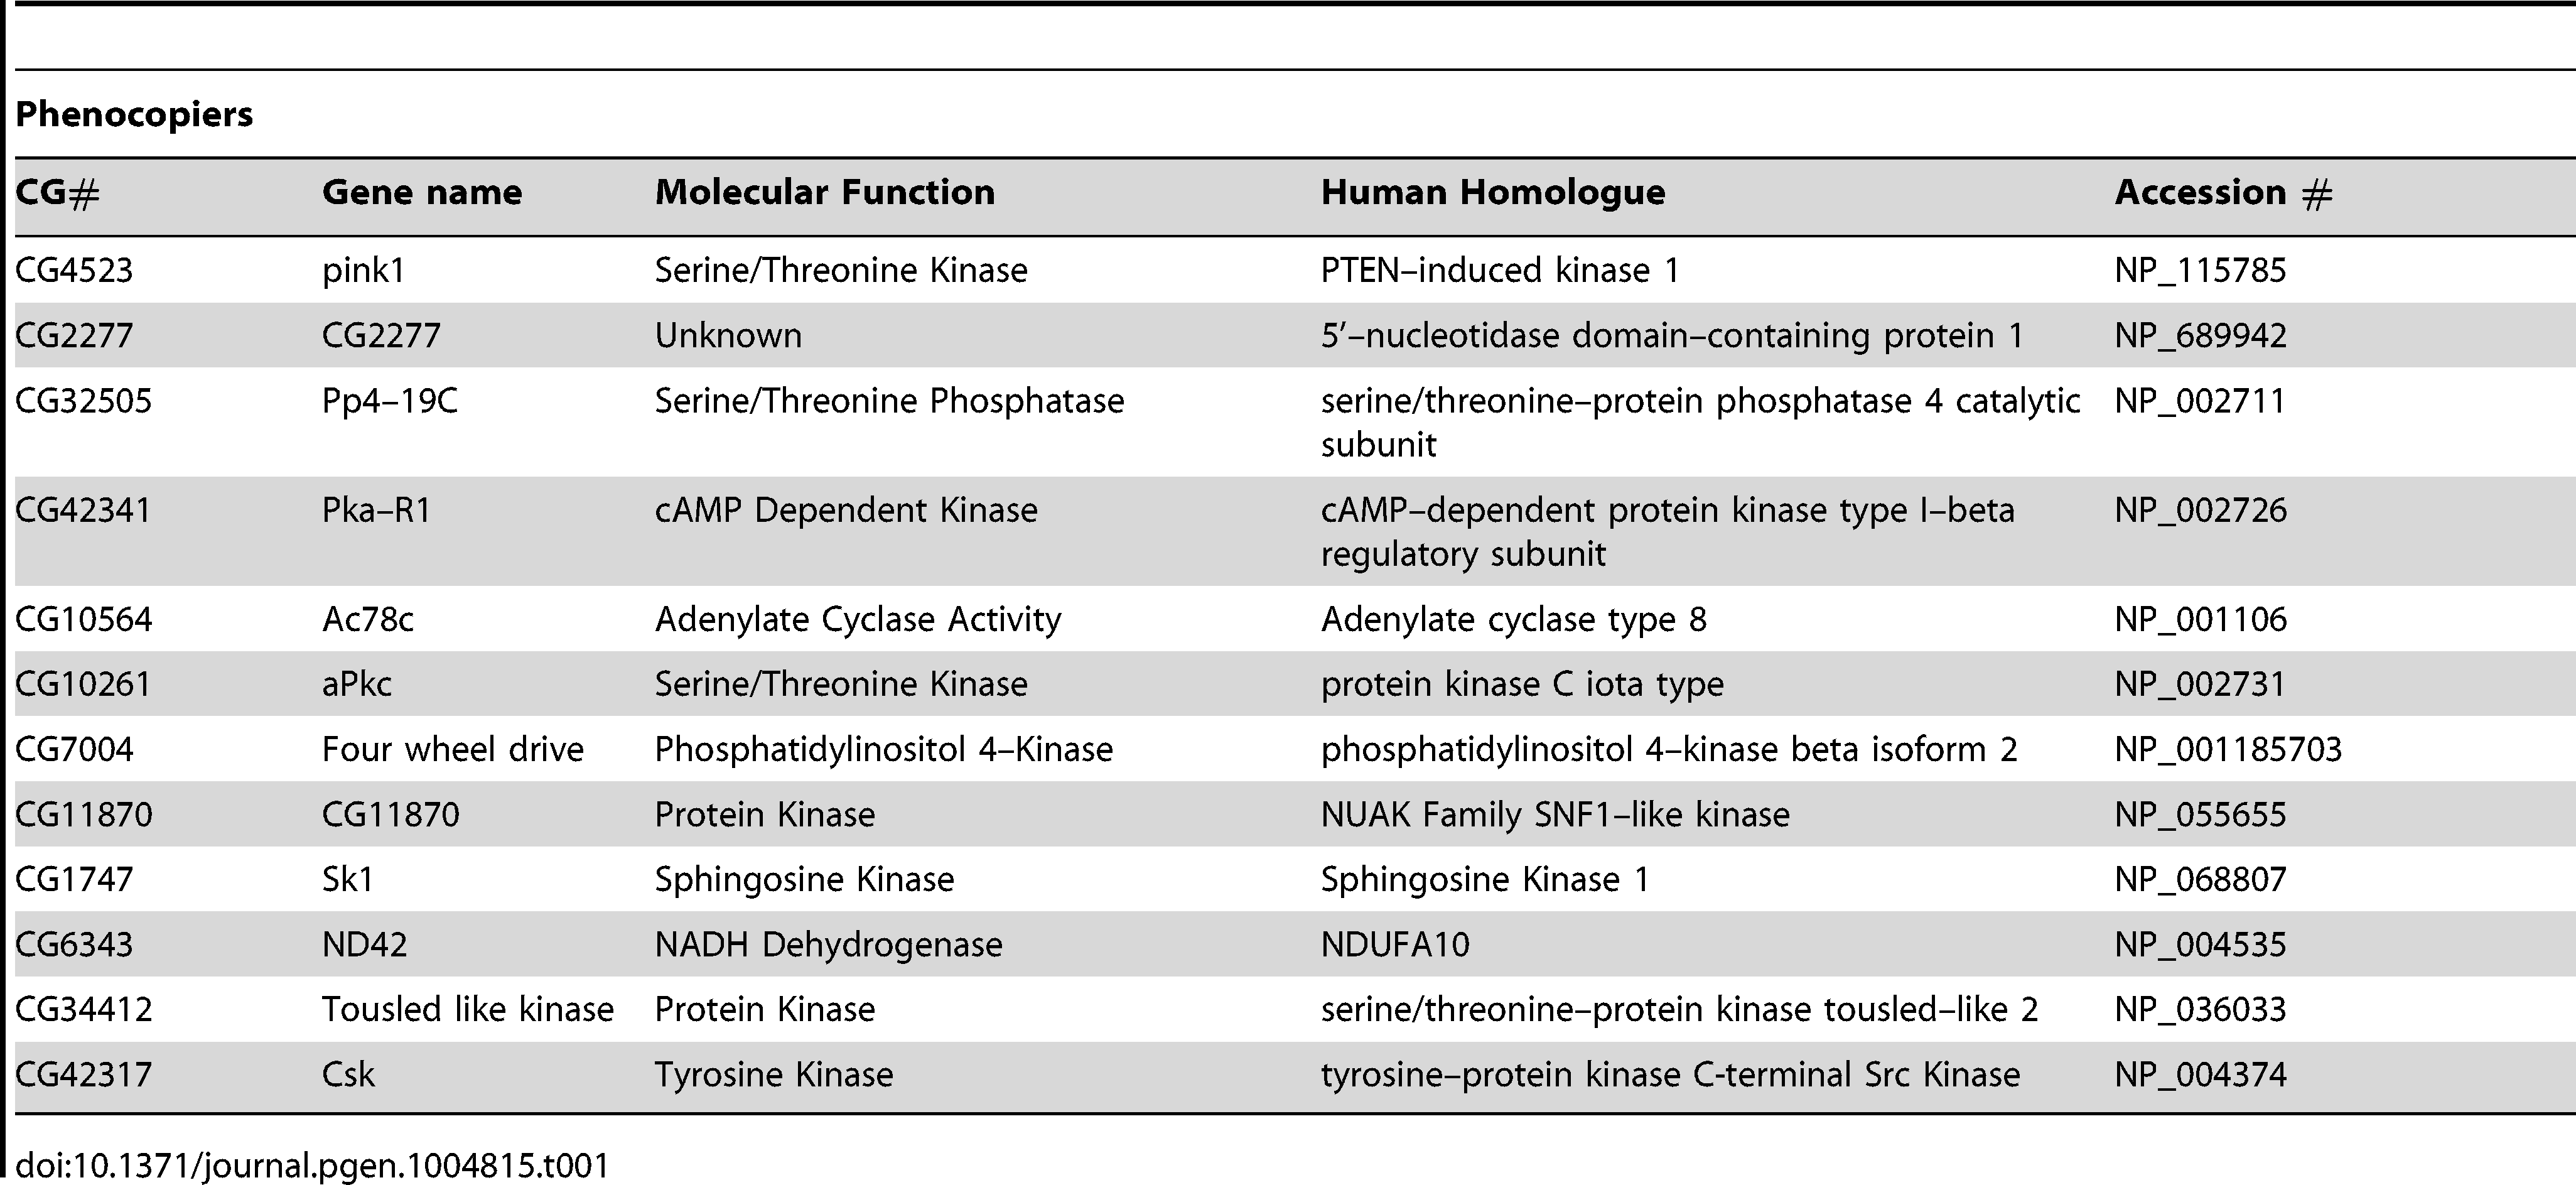 List of genes that phenocopy <i>pink1</i> dsRNA induced mitochondrial fusion.